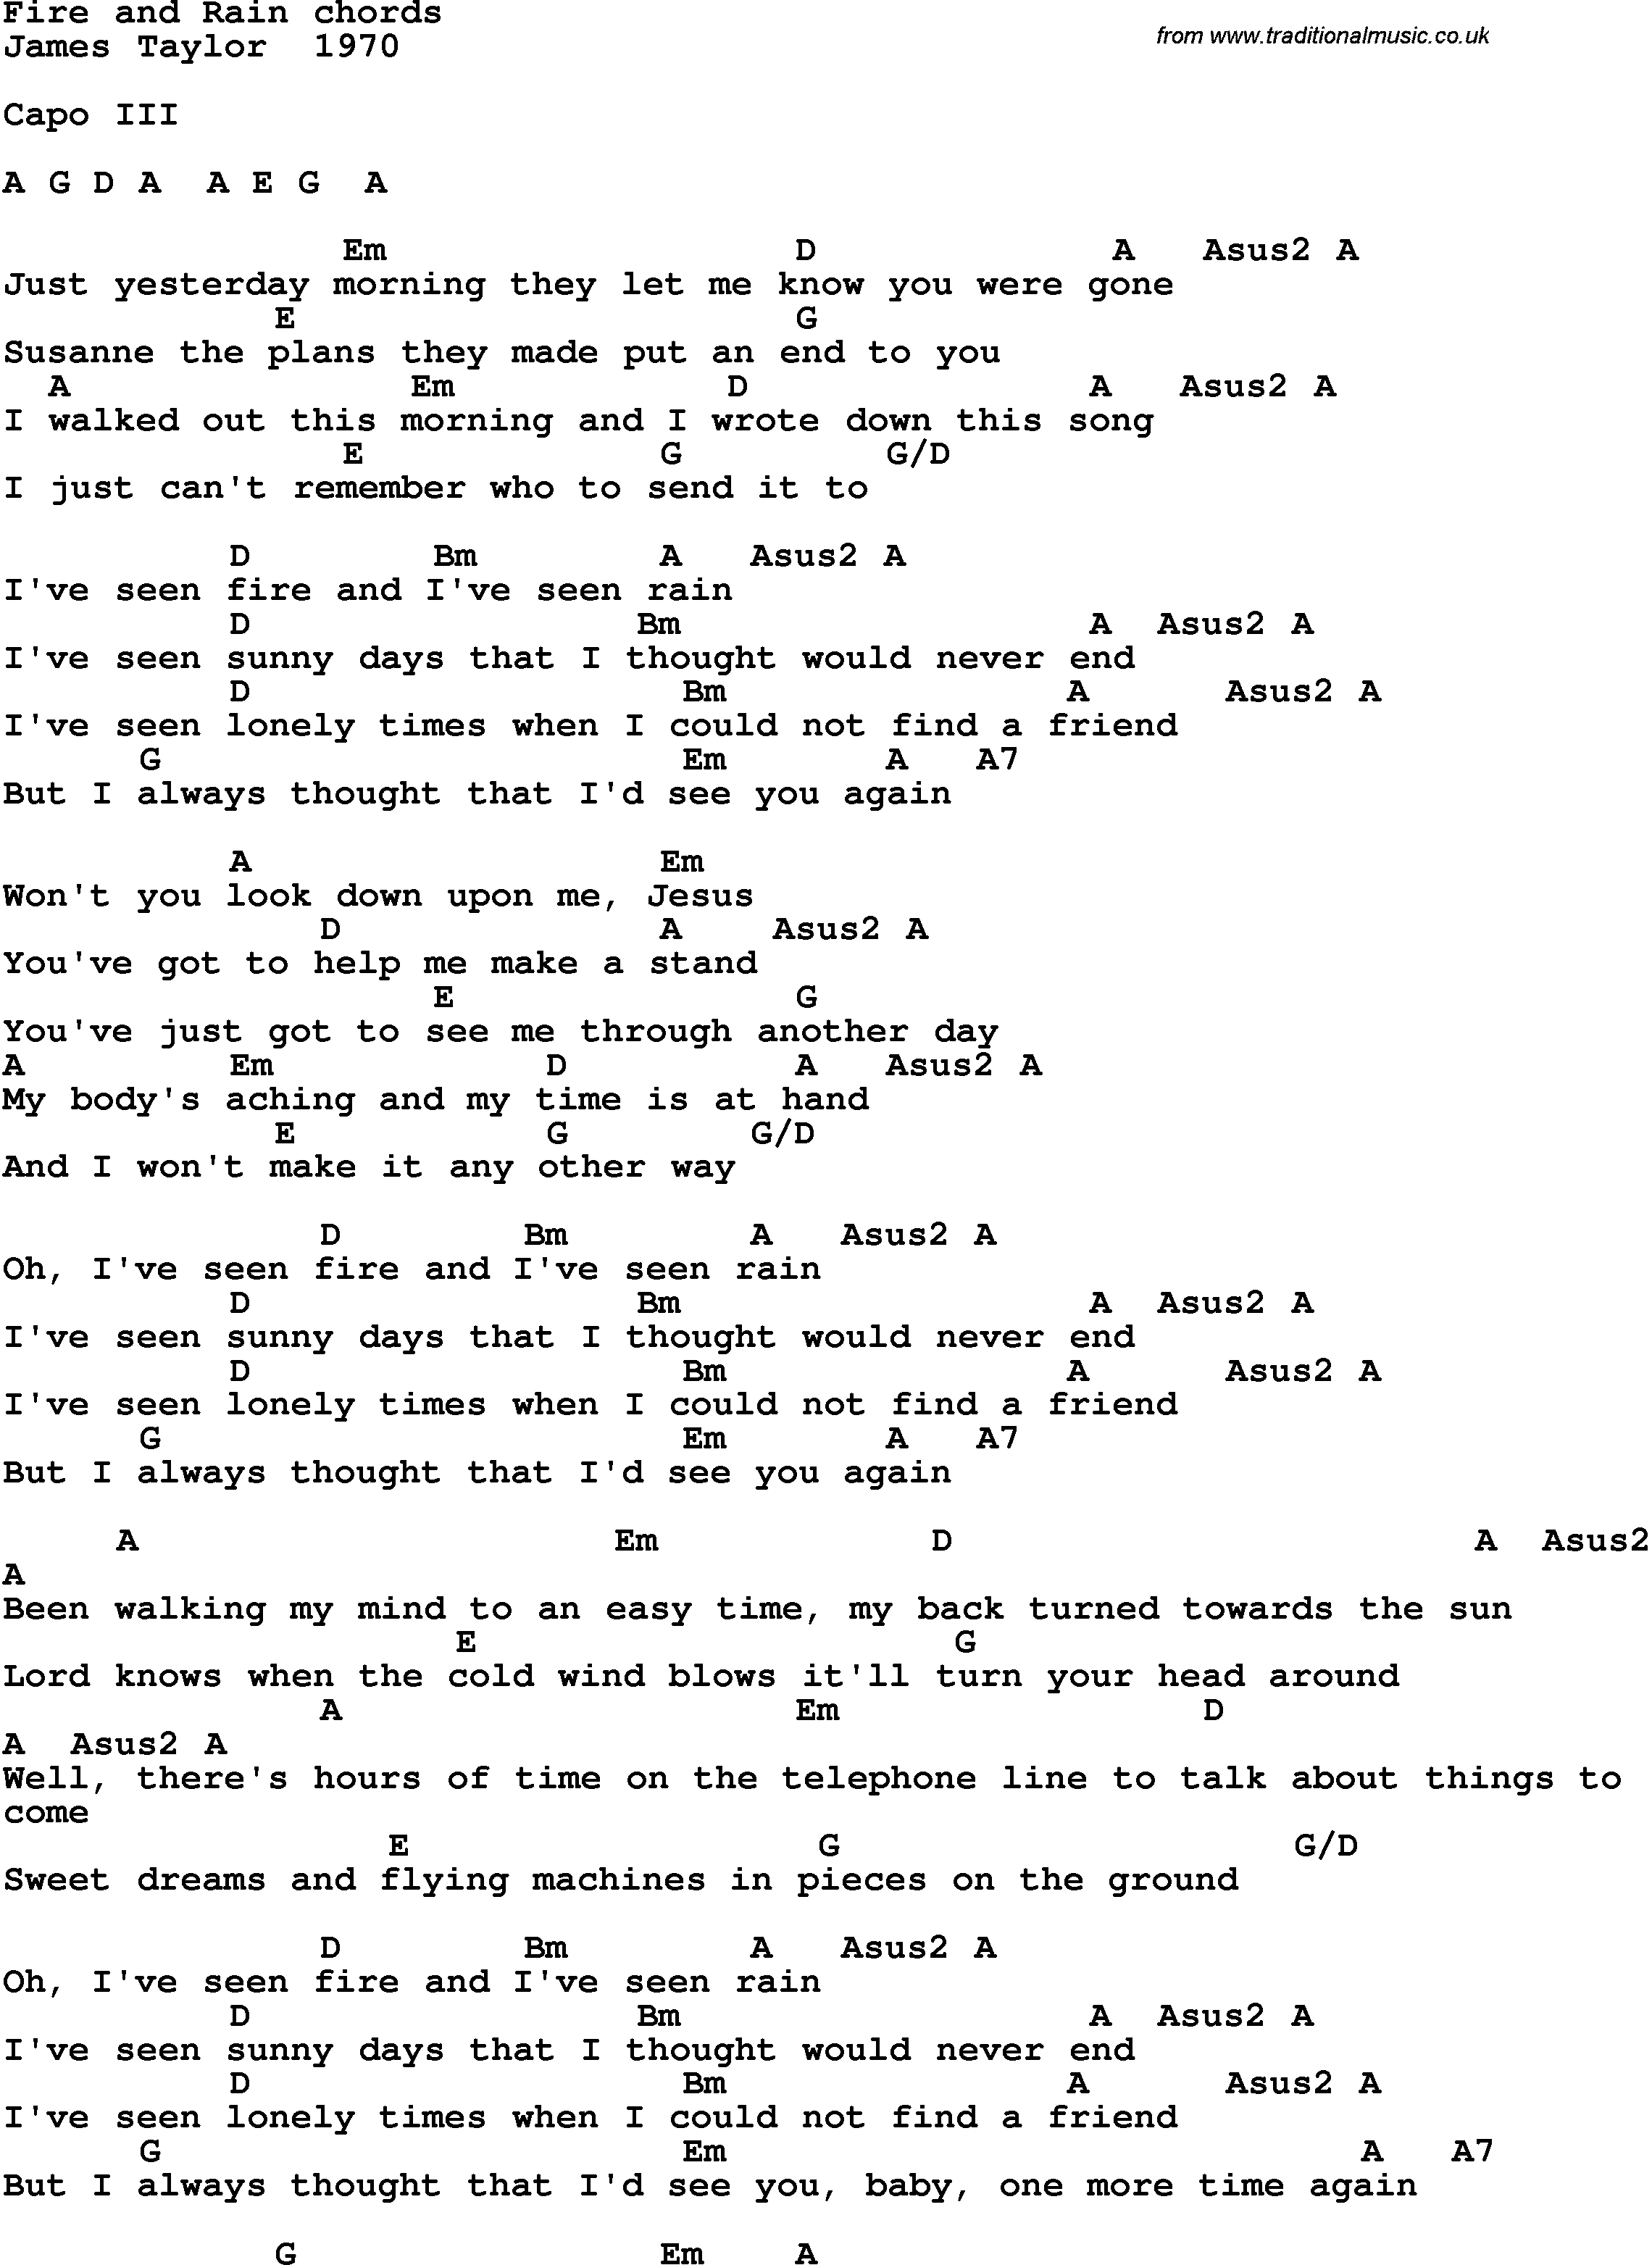 Fire And Rain Chords Song Lyrics With Guitar Chords For Fire And Rain